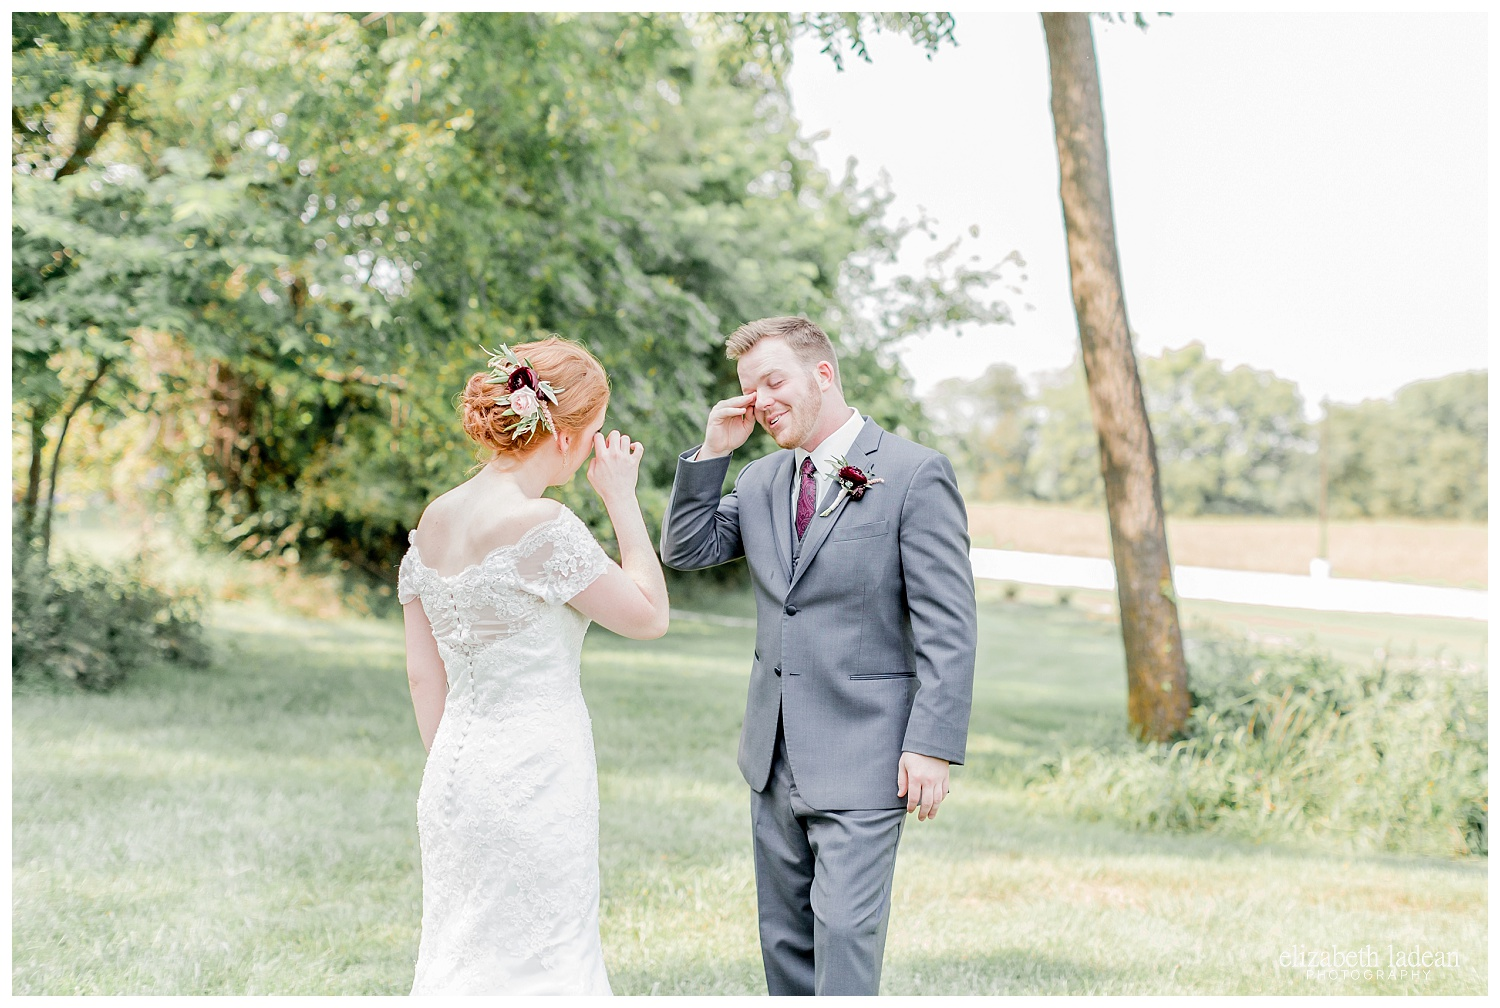 Burgundy-and-Gold-Wedding-Kansas-City-The-Legacy-at-Green-Hills-M+T0902-Elizabeth-Ladean-Photography-photo-_2265.jpg